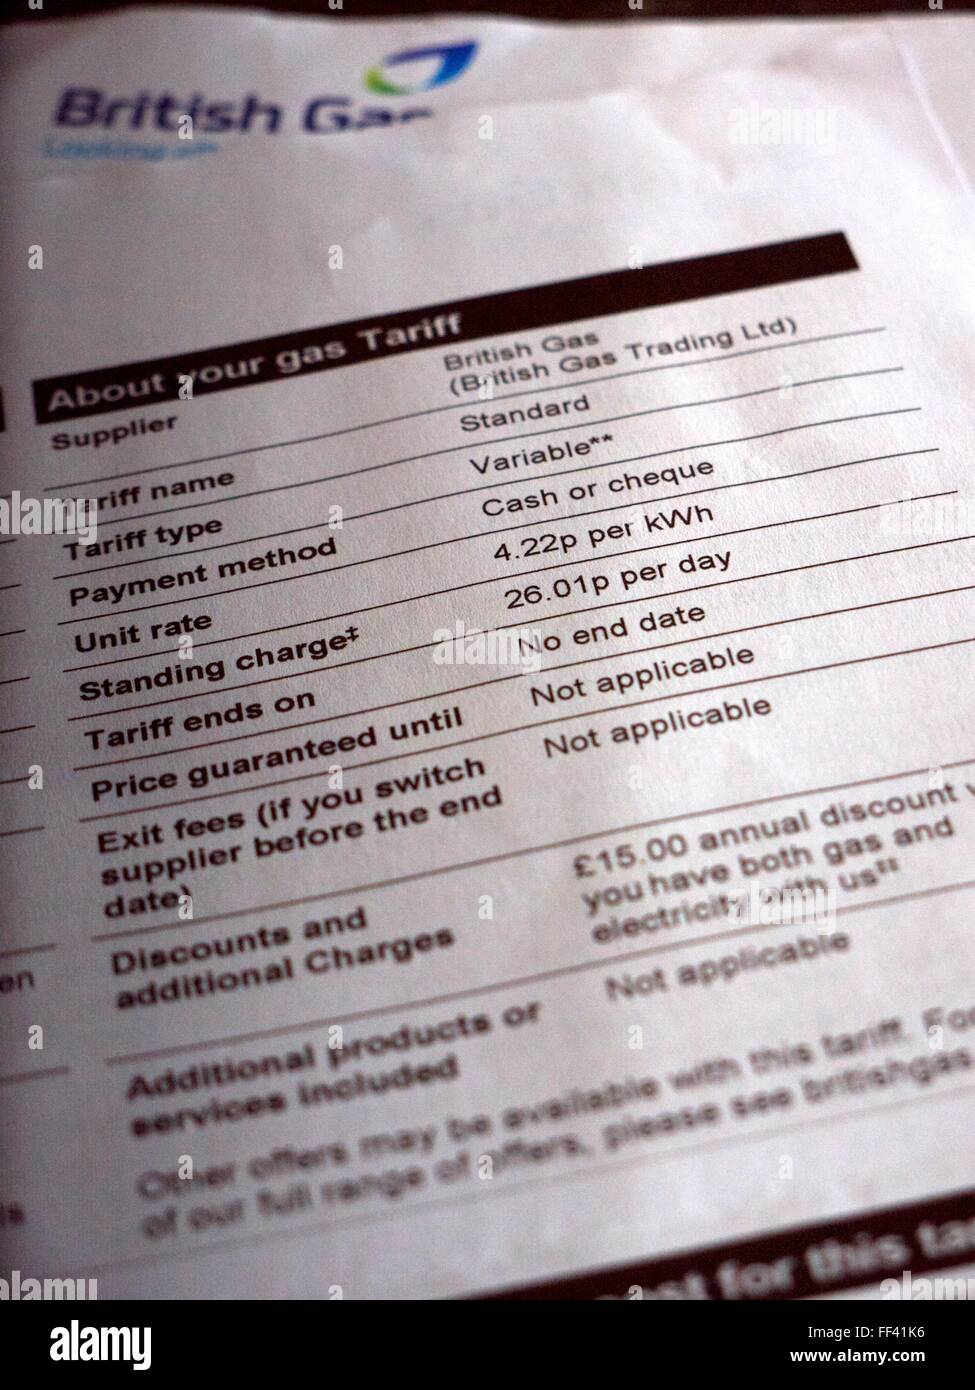 Gas and Electricity bill from British Gas Stock Photo: 95360810 - Alamy